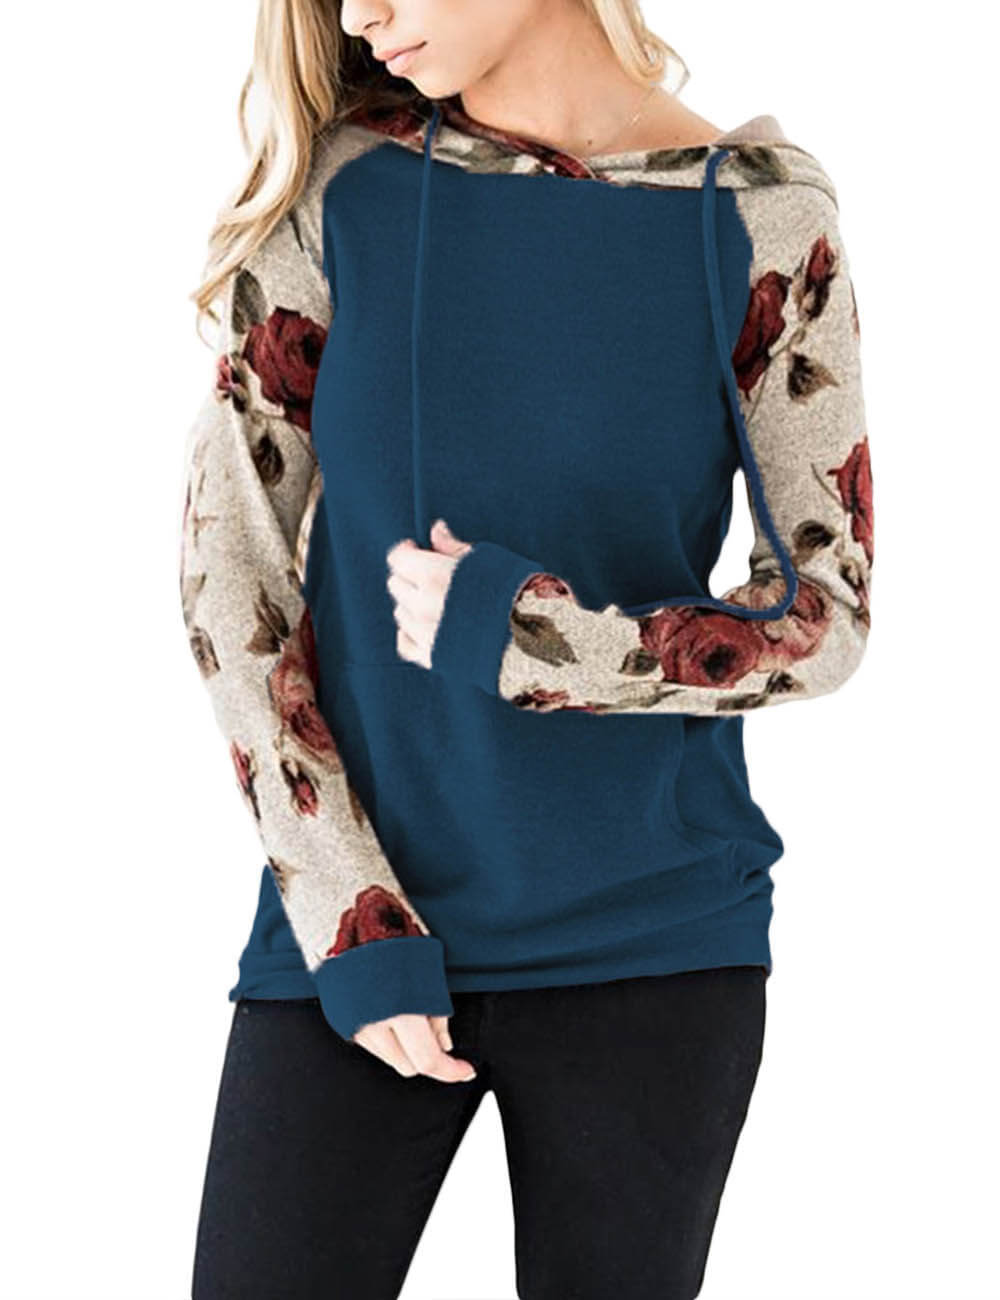 Long Sleeve Hooded Pullovers Patchwork Drawstring Sweatshirt Sports Floral Print Hoodies With Pockets